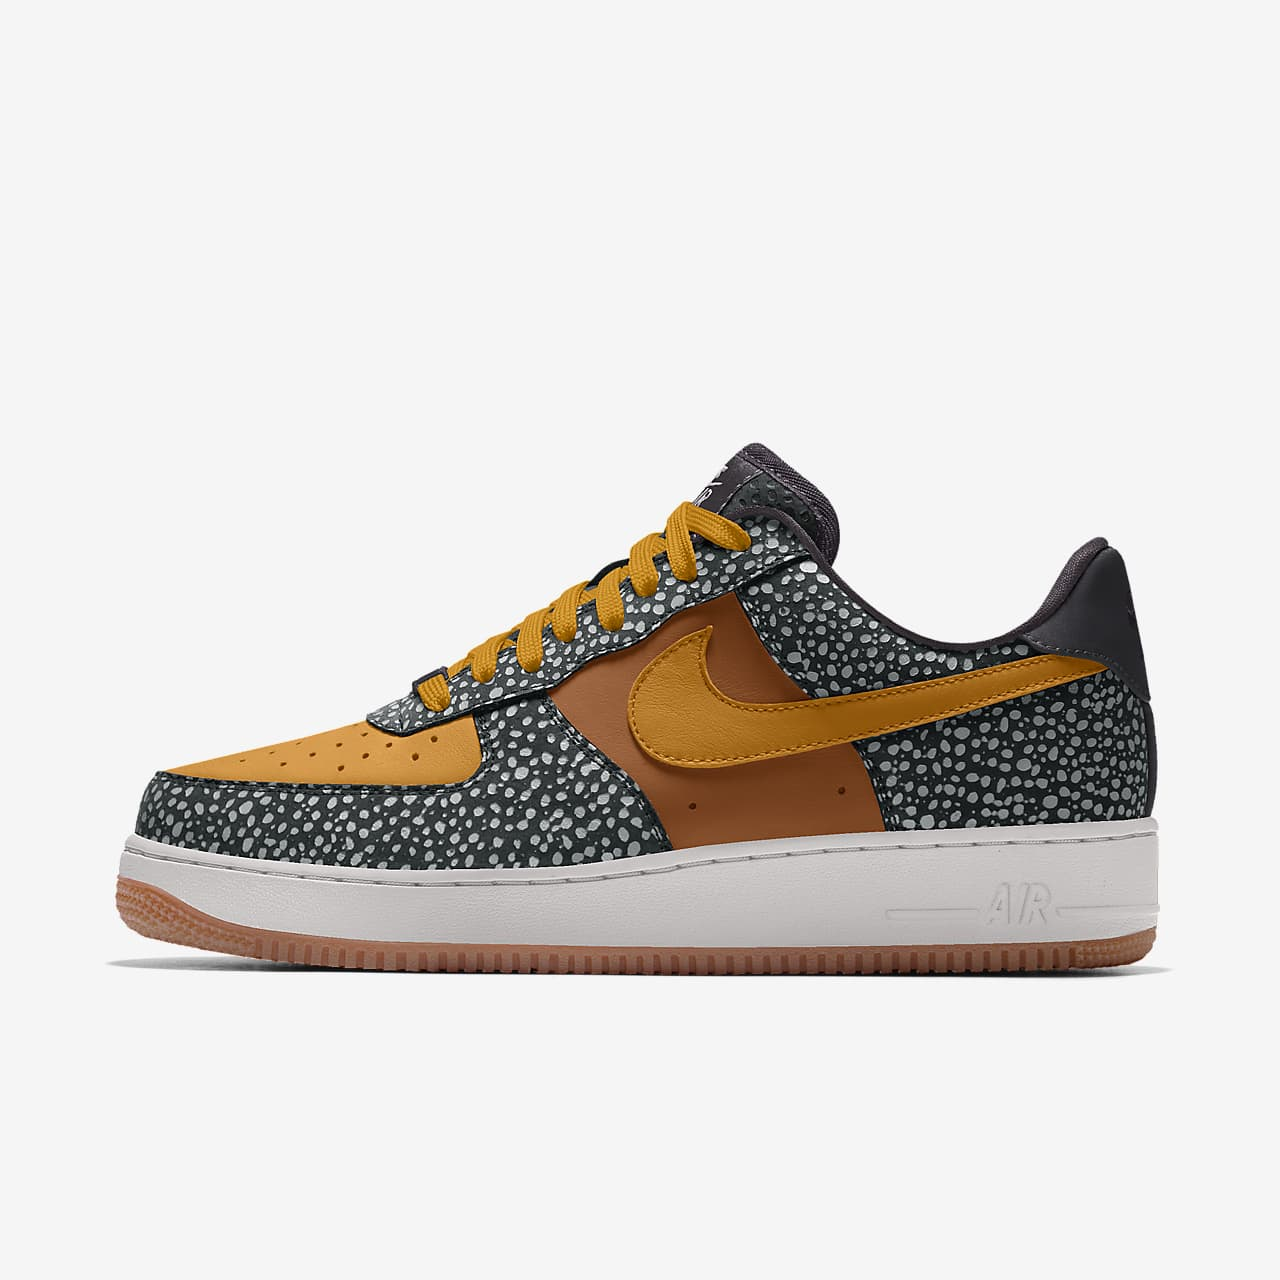 Nike Air Force 1 Low Unlocked By You Custom Shoe